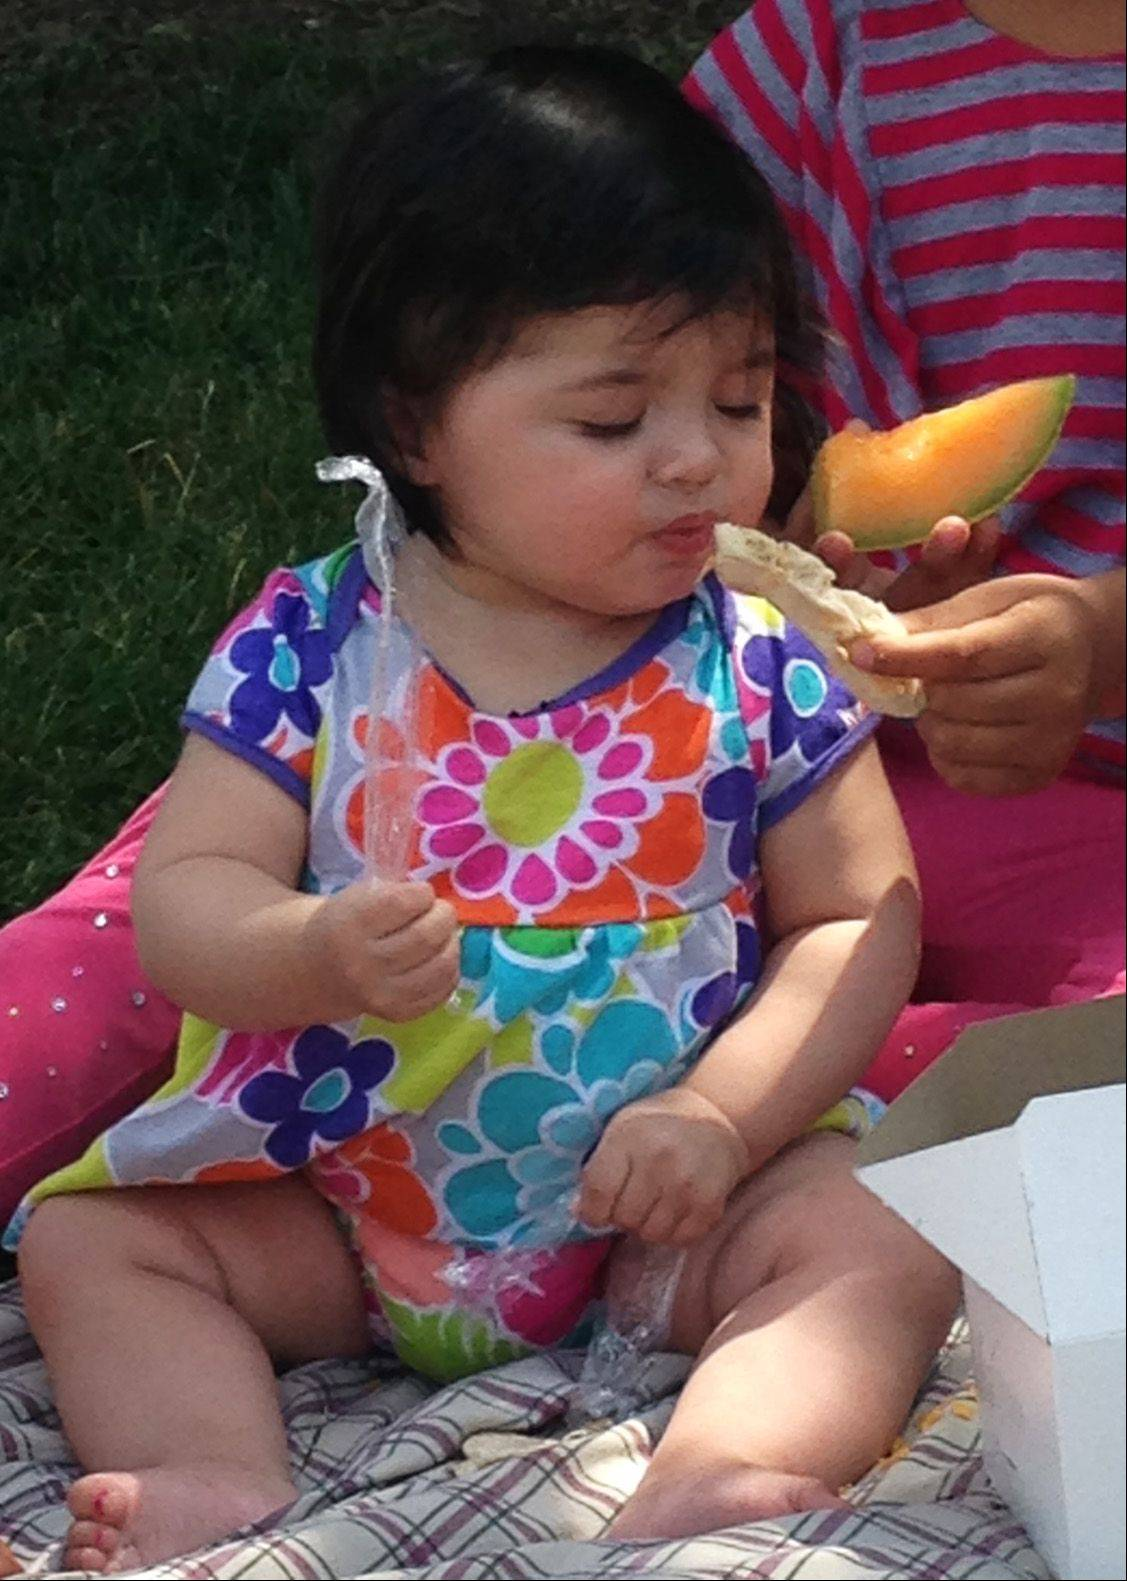 Yessica Lopez, 8 months, enjoys a snack Wednesday during the free summer lunch program at Cornerstone Park in Elgin. The lunches are donated by the Northern Illinois Food Bank.